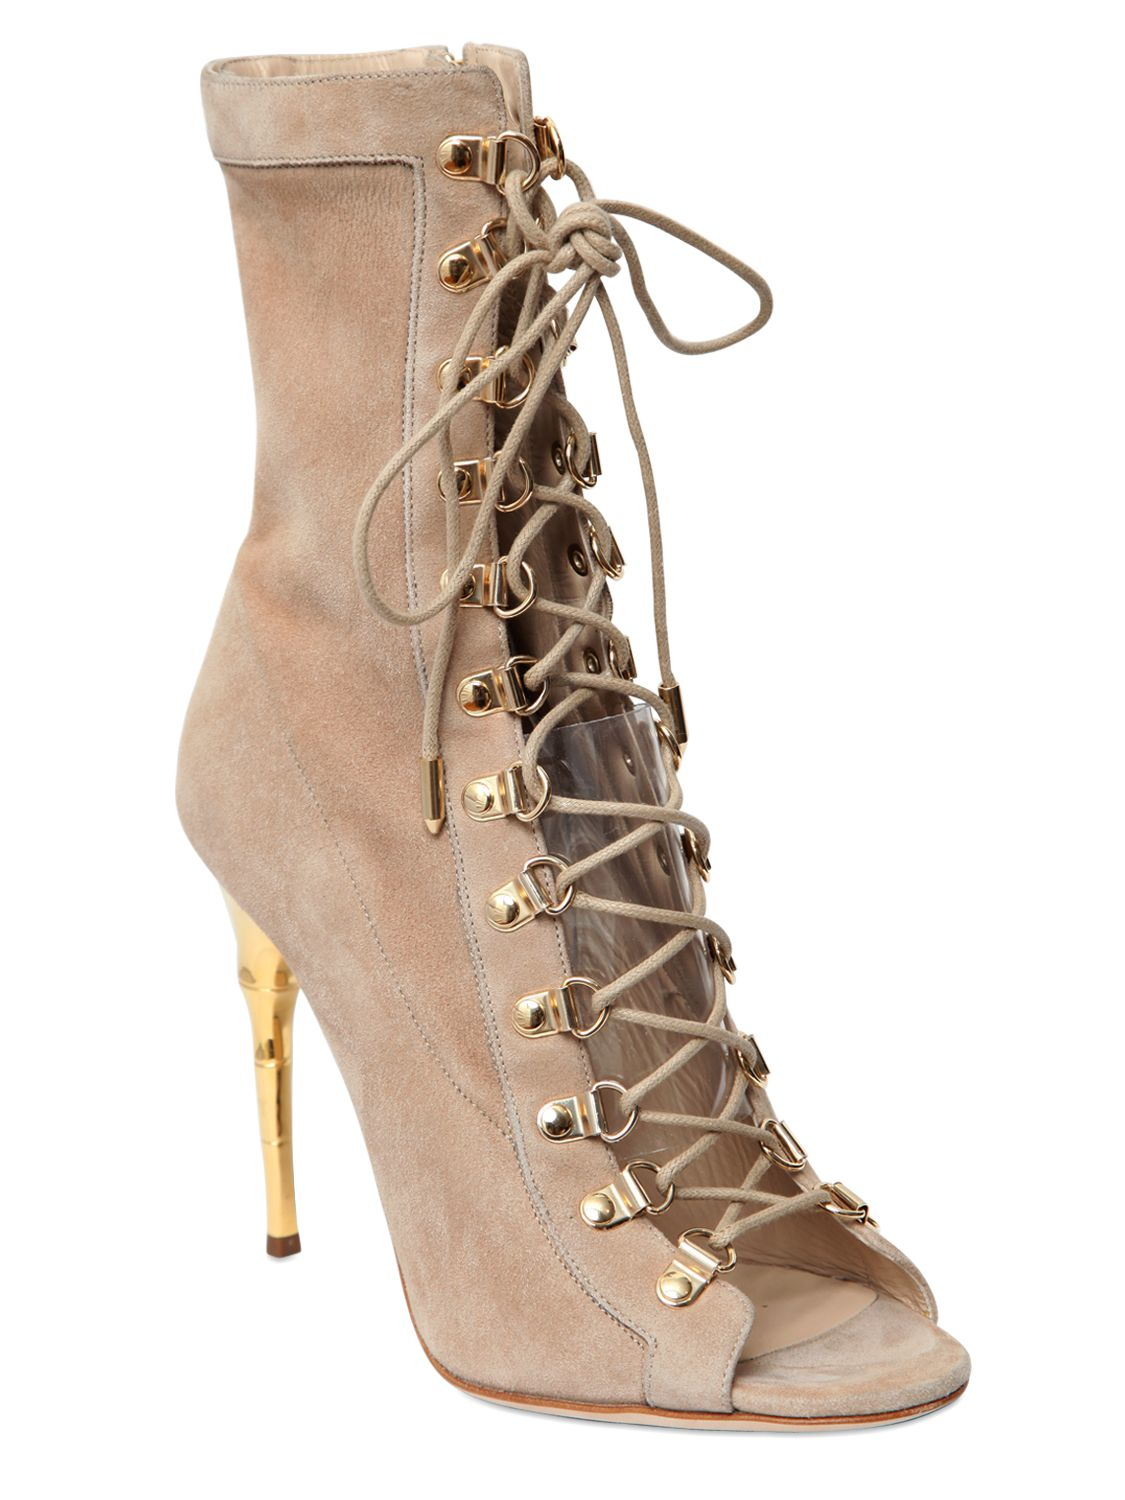 Balmain 110mm Ava Suede Lace Up Boots In Natural Lyst